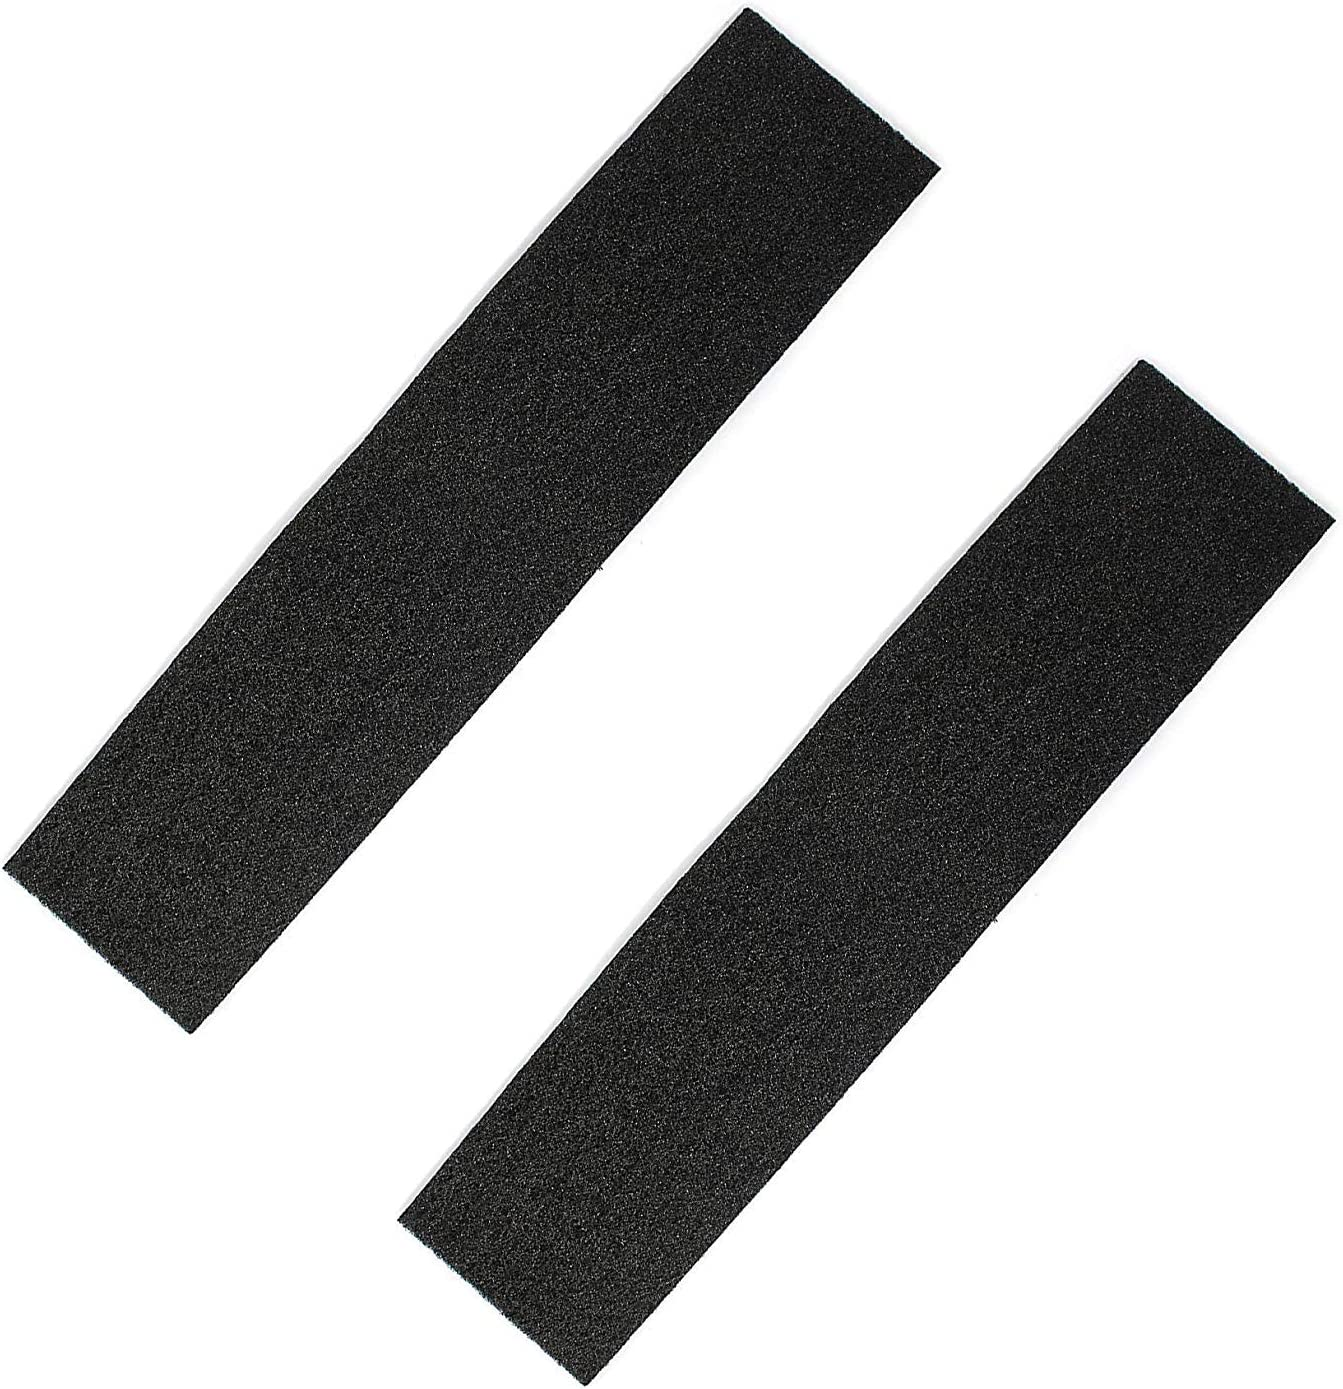 (2 Pack) Air Filter Factory Compatible Replacement For Frigidaire 1055417 Charcoal Carbon Microwave Oven Filter Pads